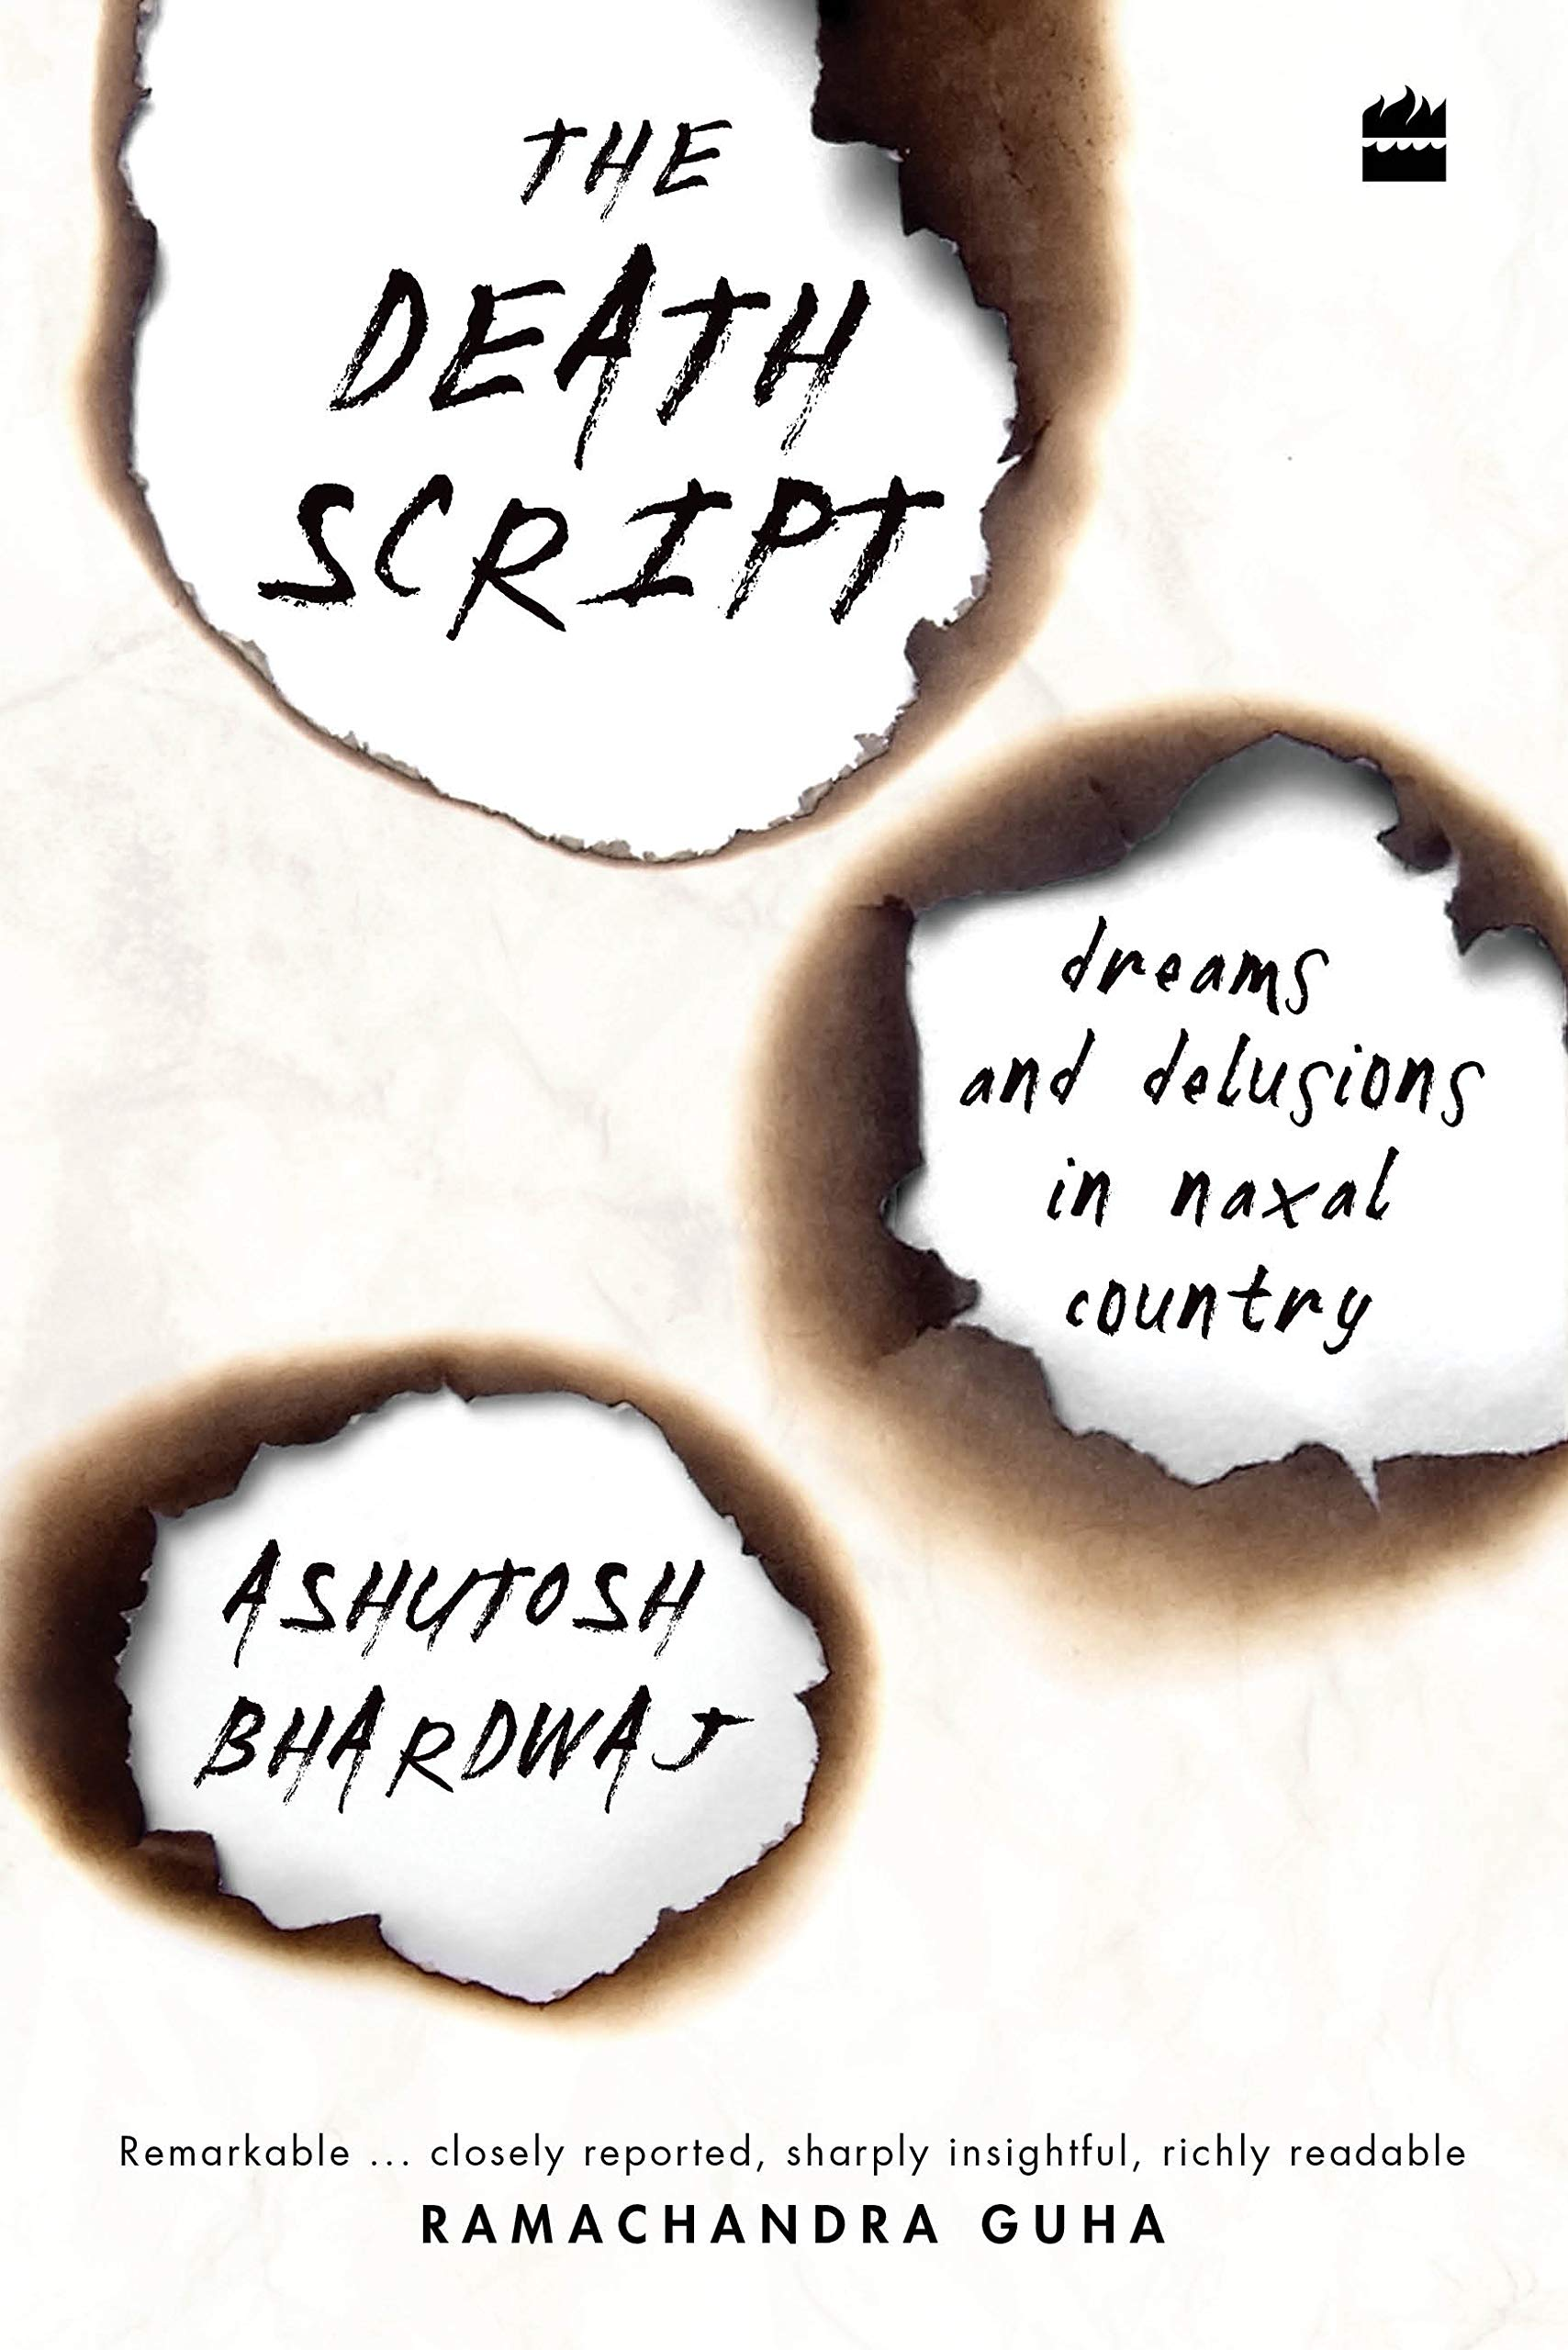 The death script: Dreams and delusions in Naxal country by Ashutosh Bhardwaj, HarperCollins, Rs 599